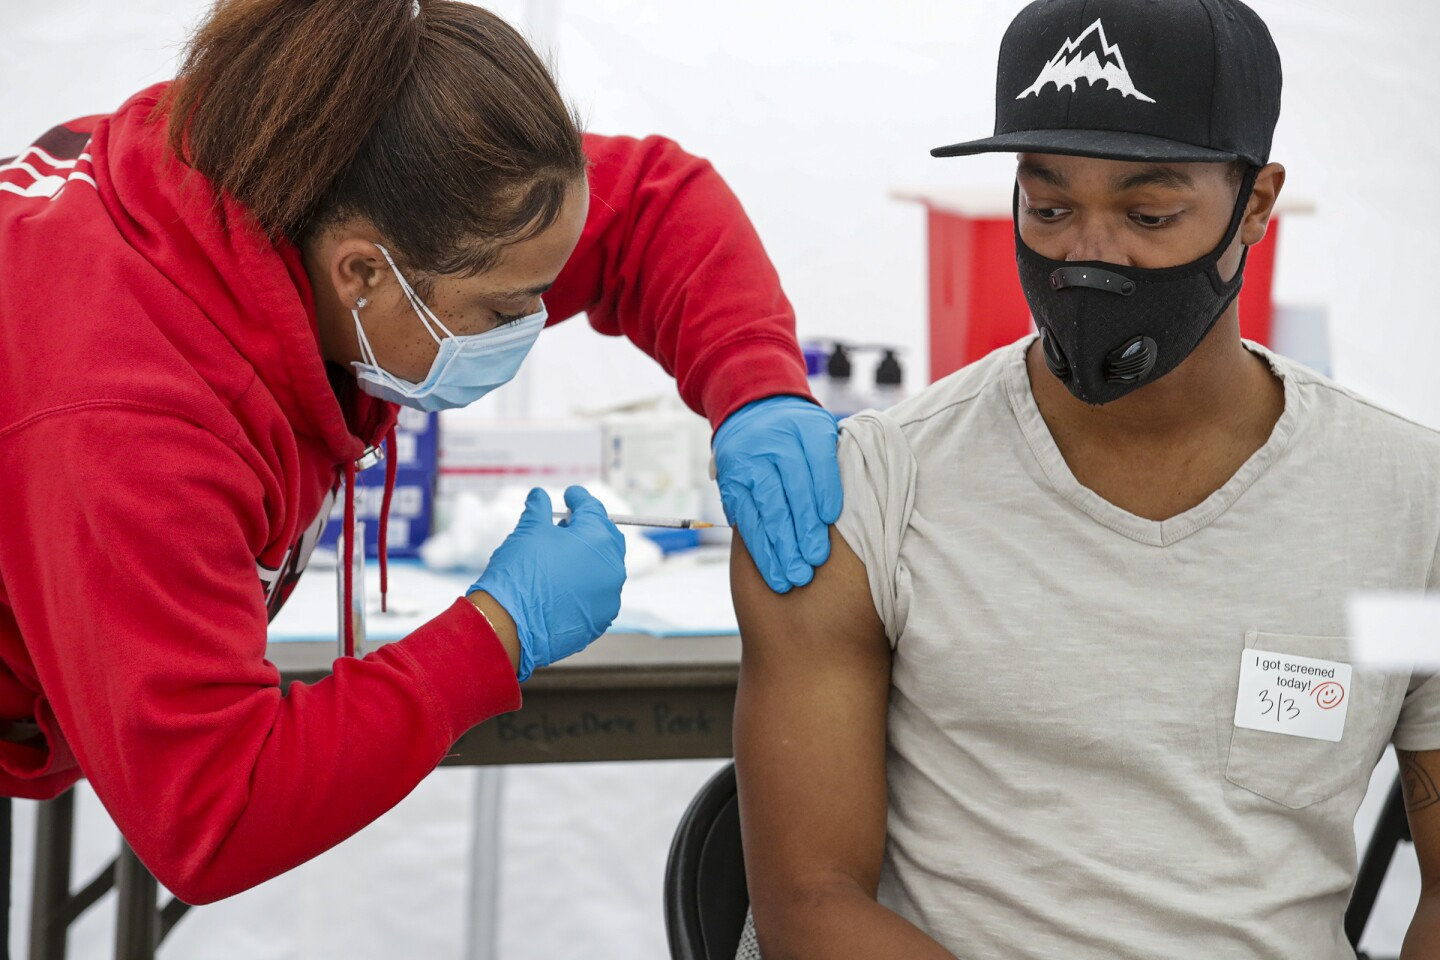 A person in a red sweatshirt administers COVID-19 vaccine to a young Black man. Both are wearing face masks.